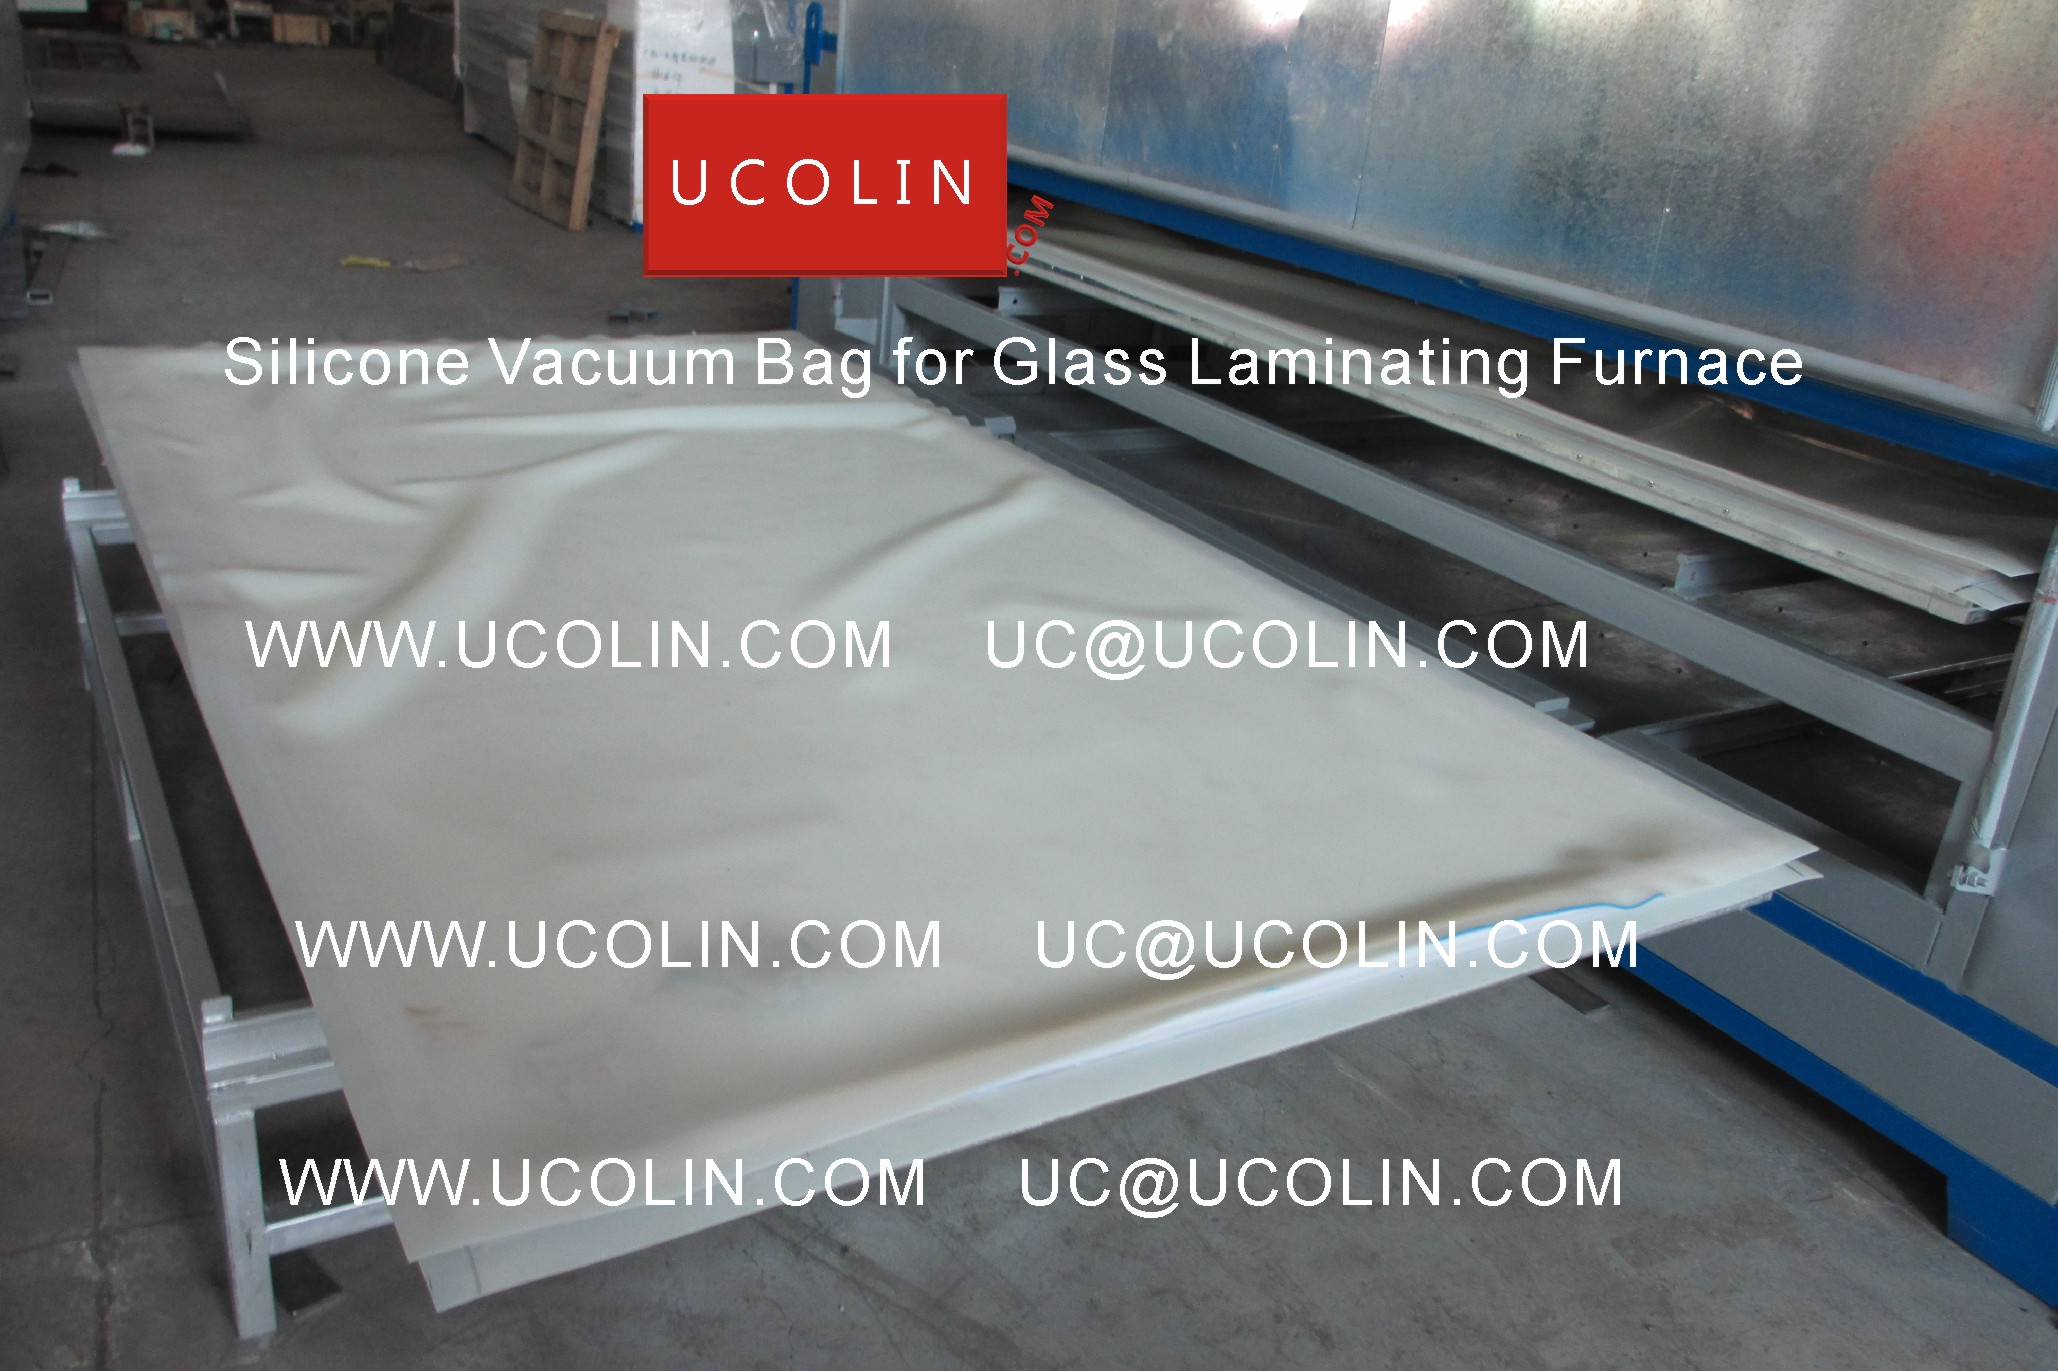 05 Application of Silicone Vacuum Bag for Glass Laminating Furnace